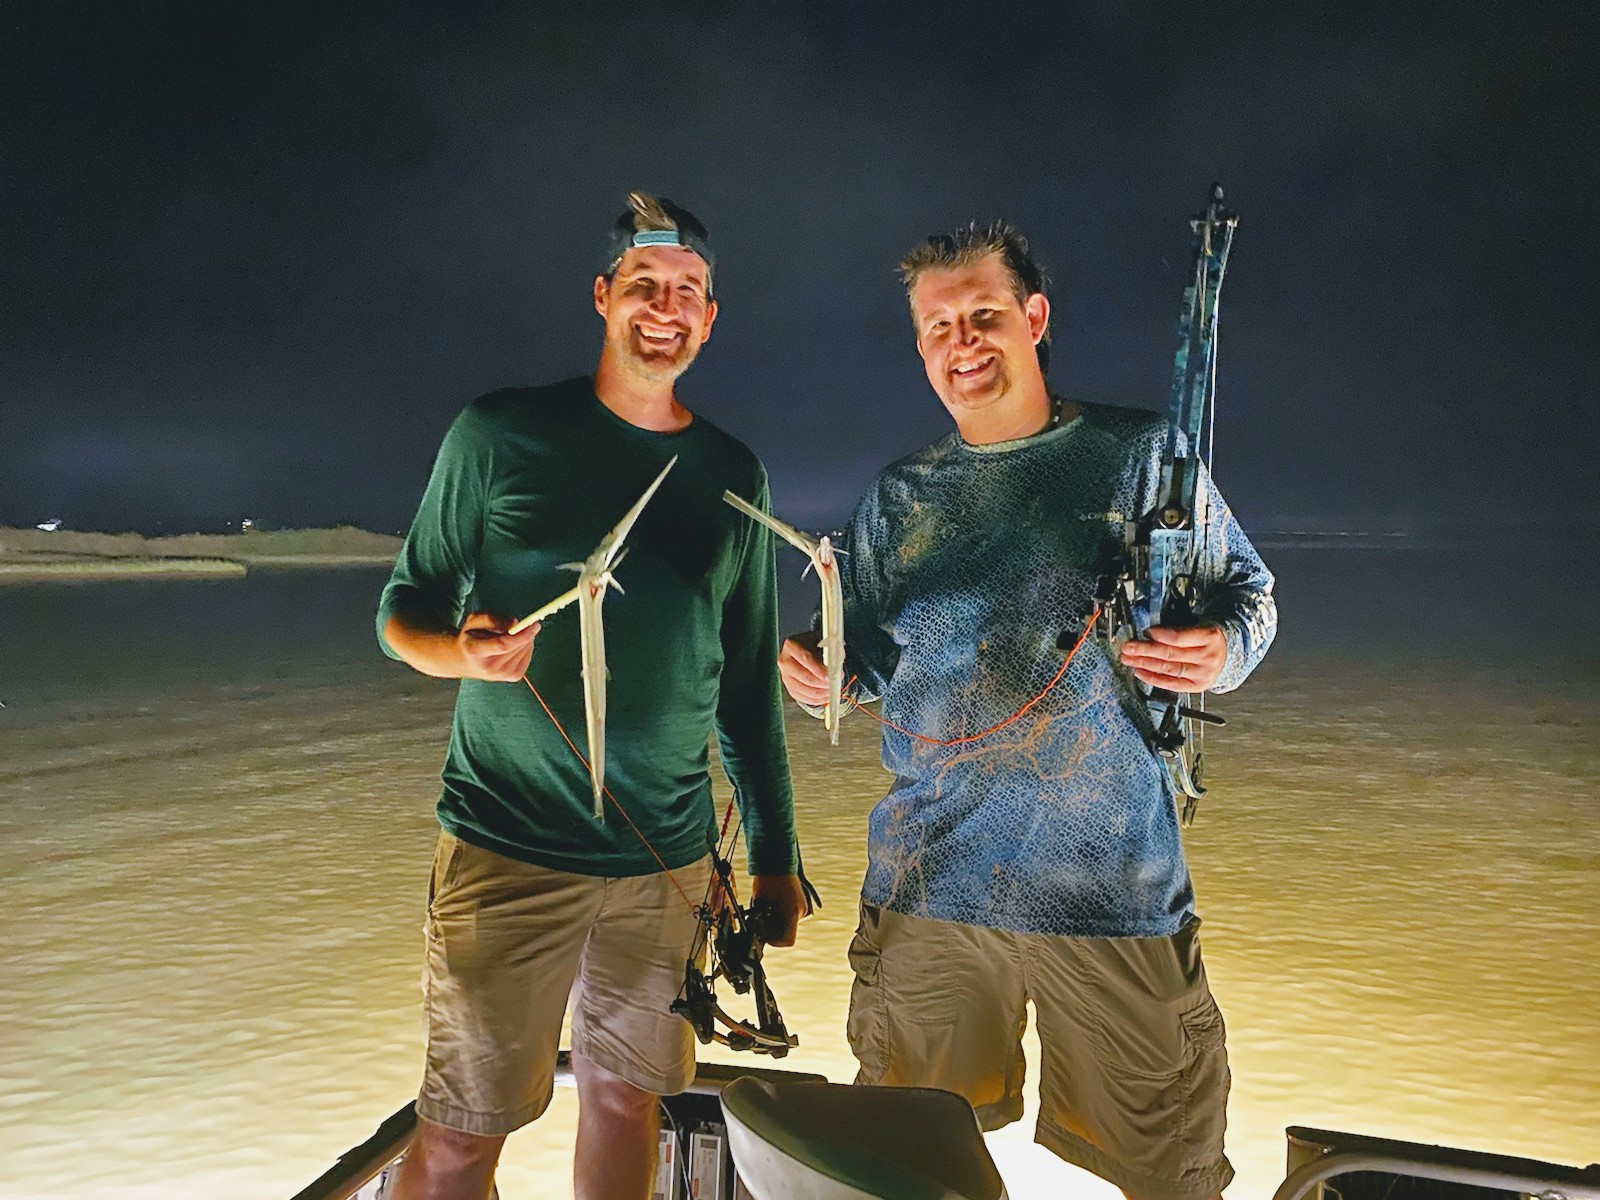 Two men holding bowfishing equipment and a couple of Needlefish while standing on a boat in nighttime